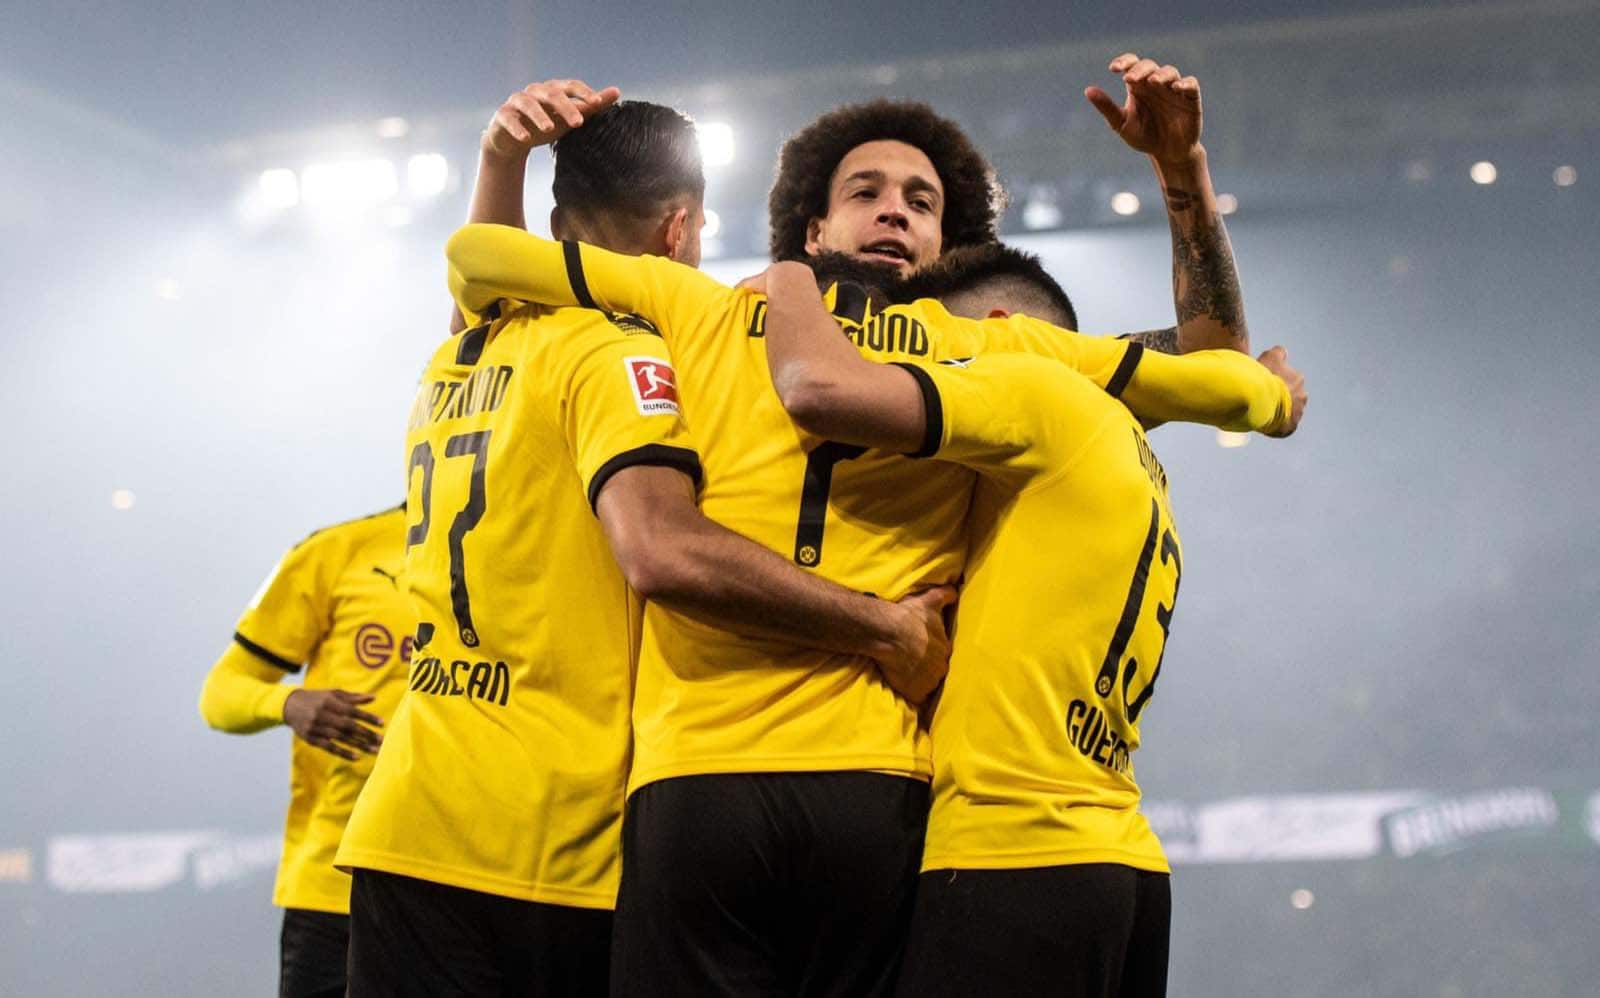 Borussia Dortmund fans banned from Hoffenheim for two seasons